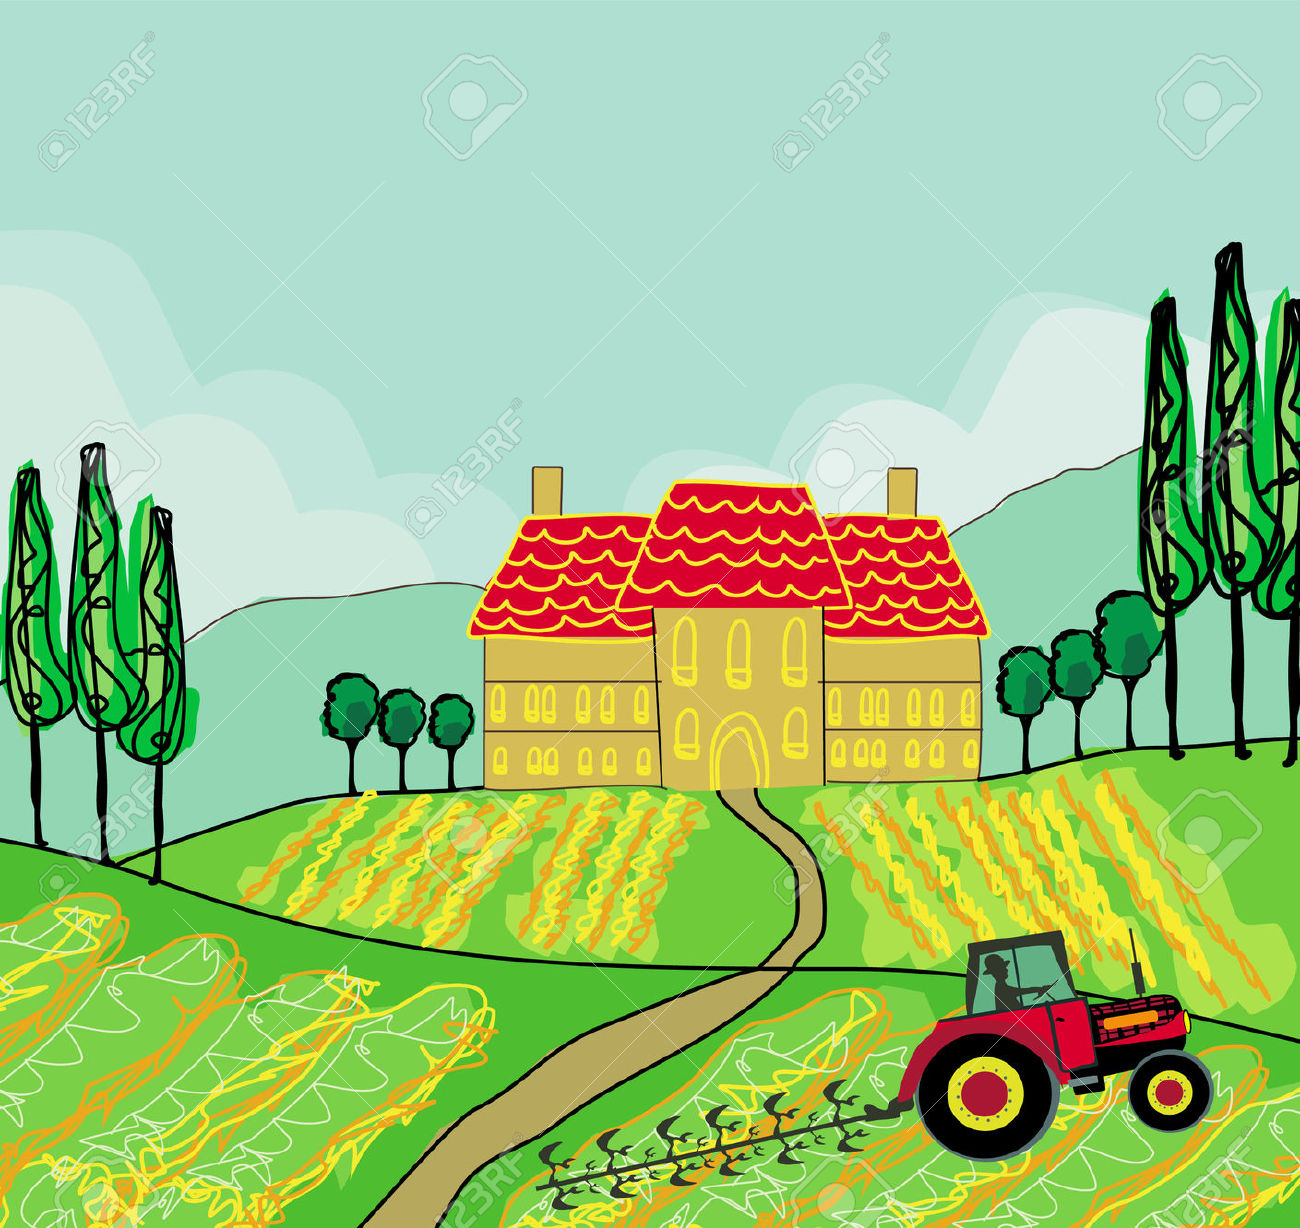 Tractor in field clipart.